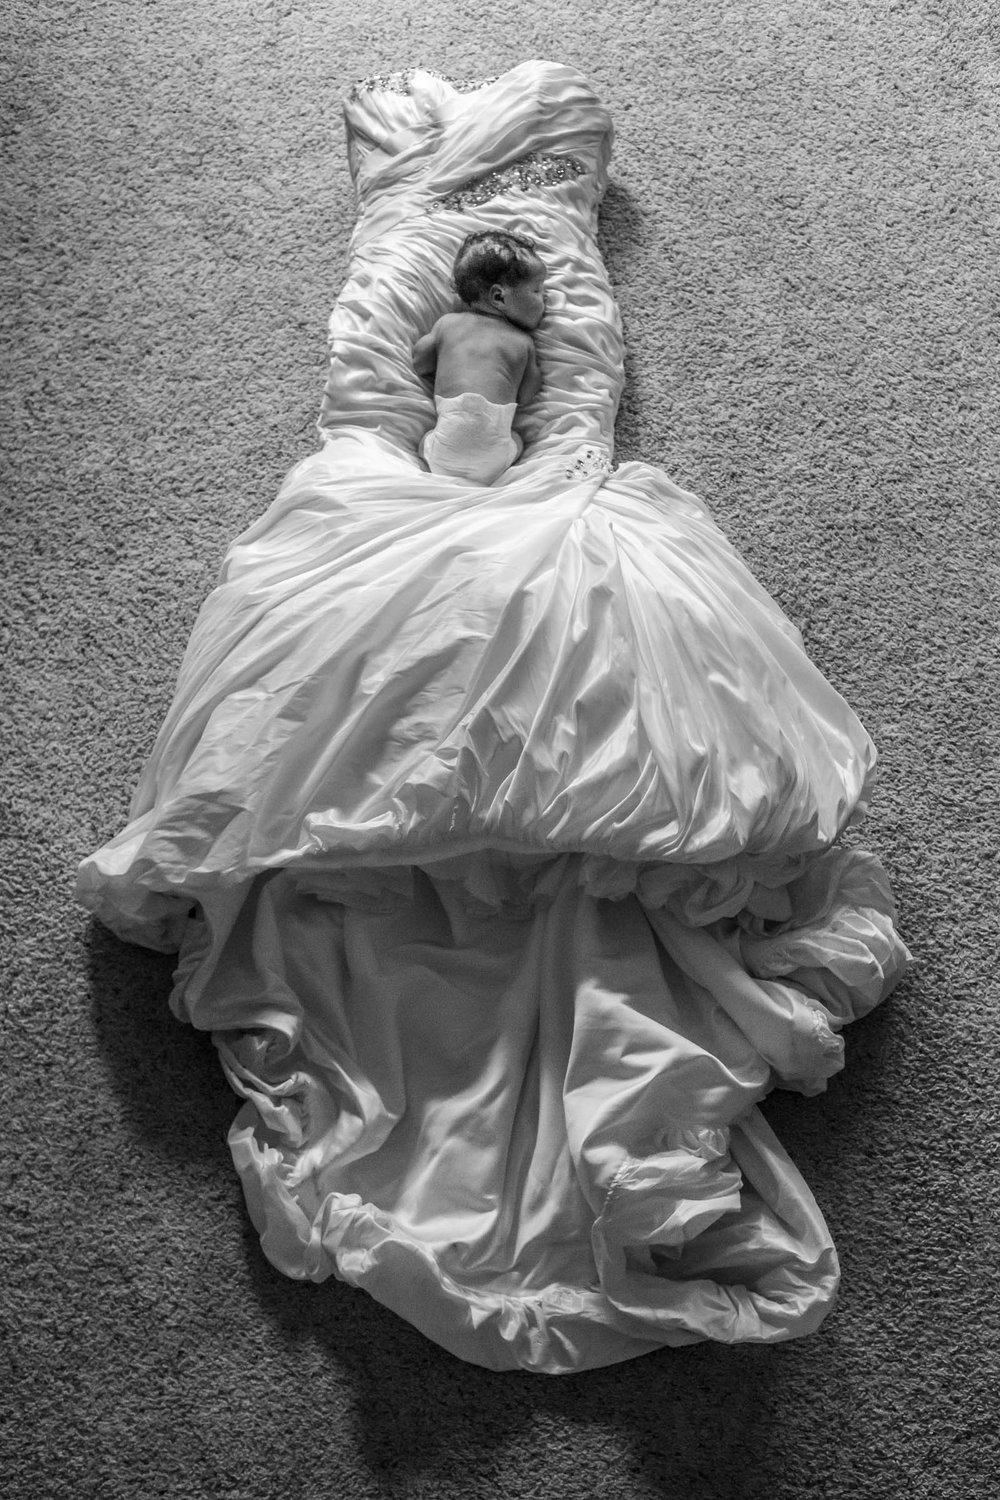 Black and white photo of baby sleeping on wedding dress